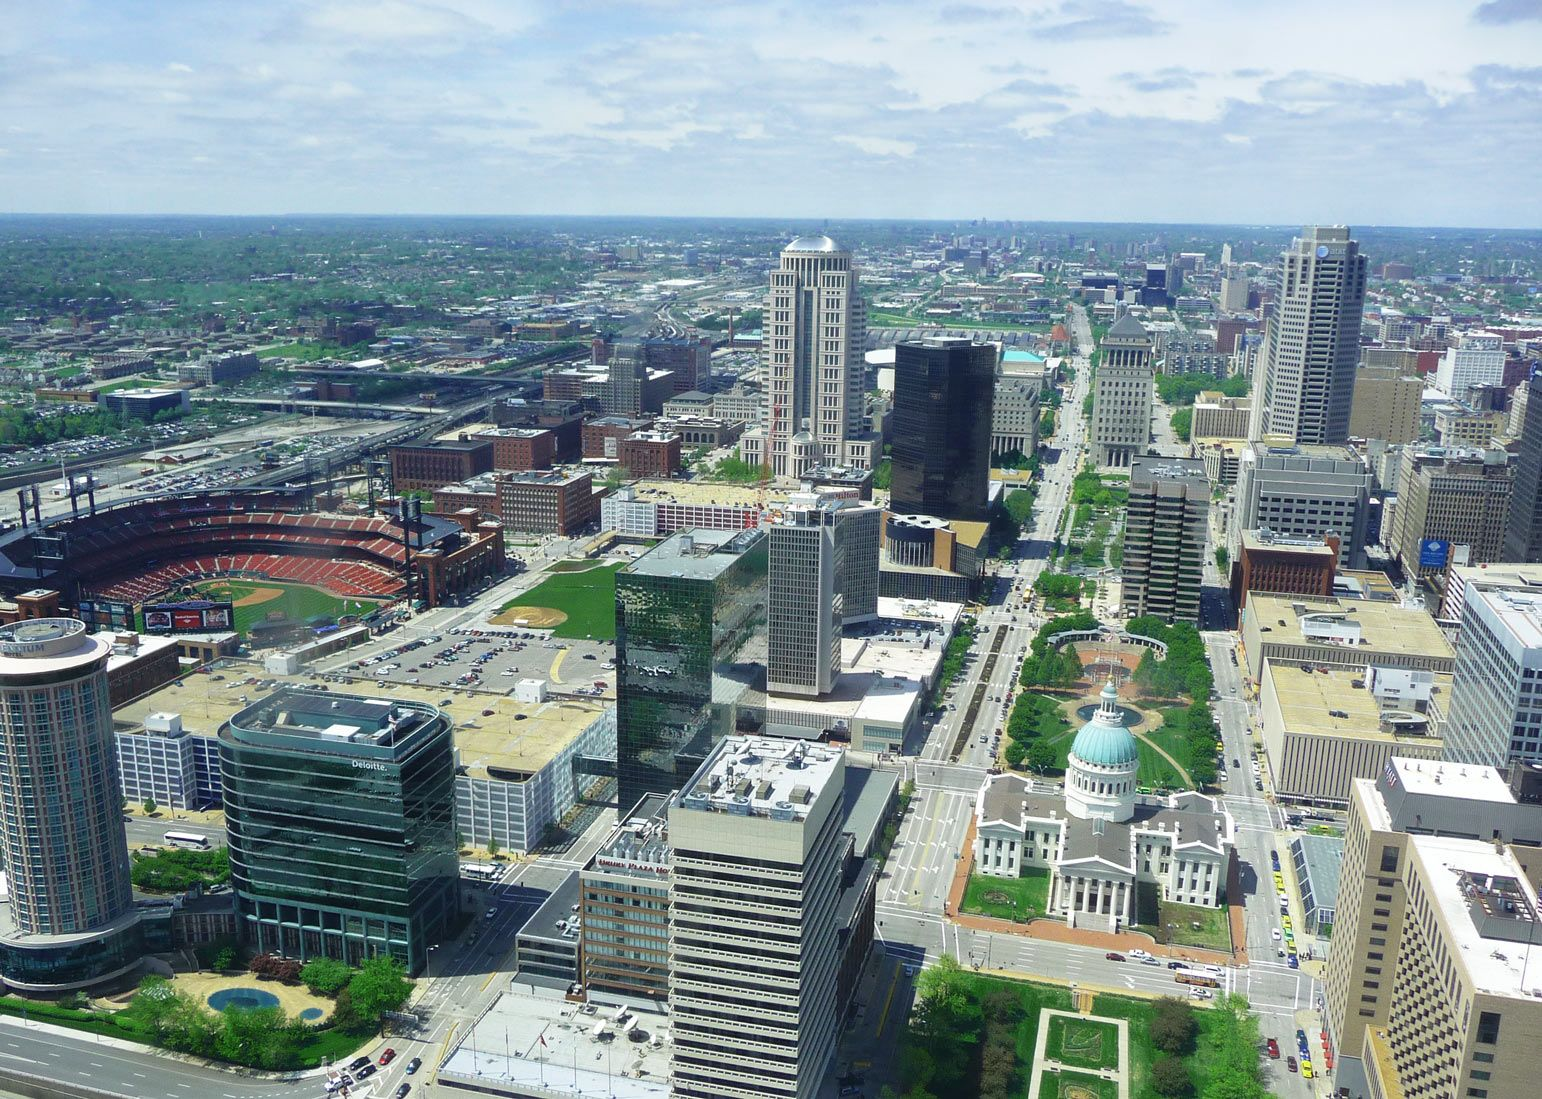 AN UNEXPECTED LOVE FOR ST LOUIS AND THE TEN REASONS WHY - Ten reasons to love the St Louis Missouri USA. Dig a little deeper and you will find a place that slowly grows on you until you can't help but fall in love.